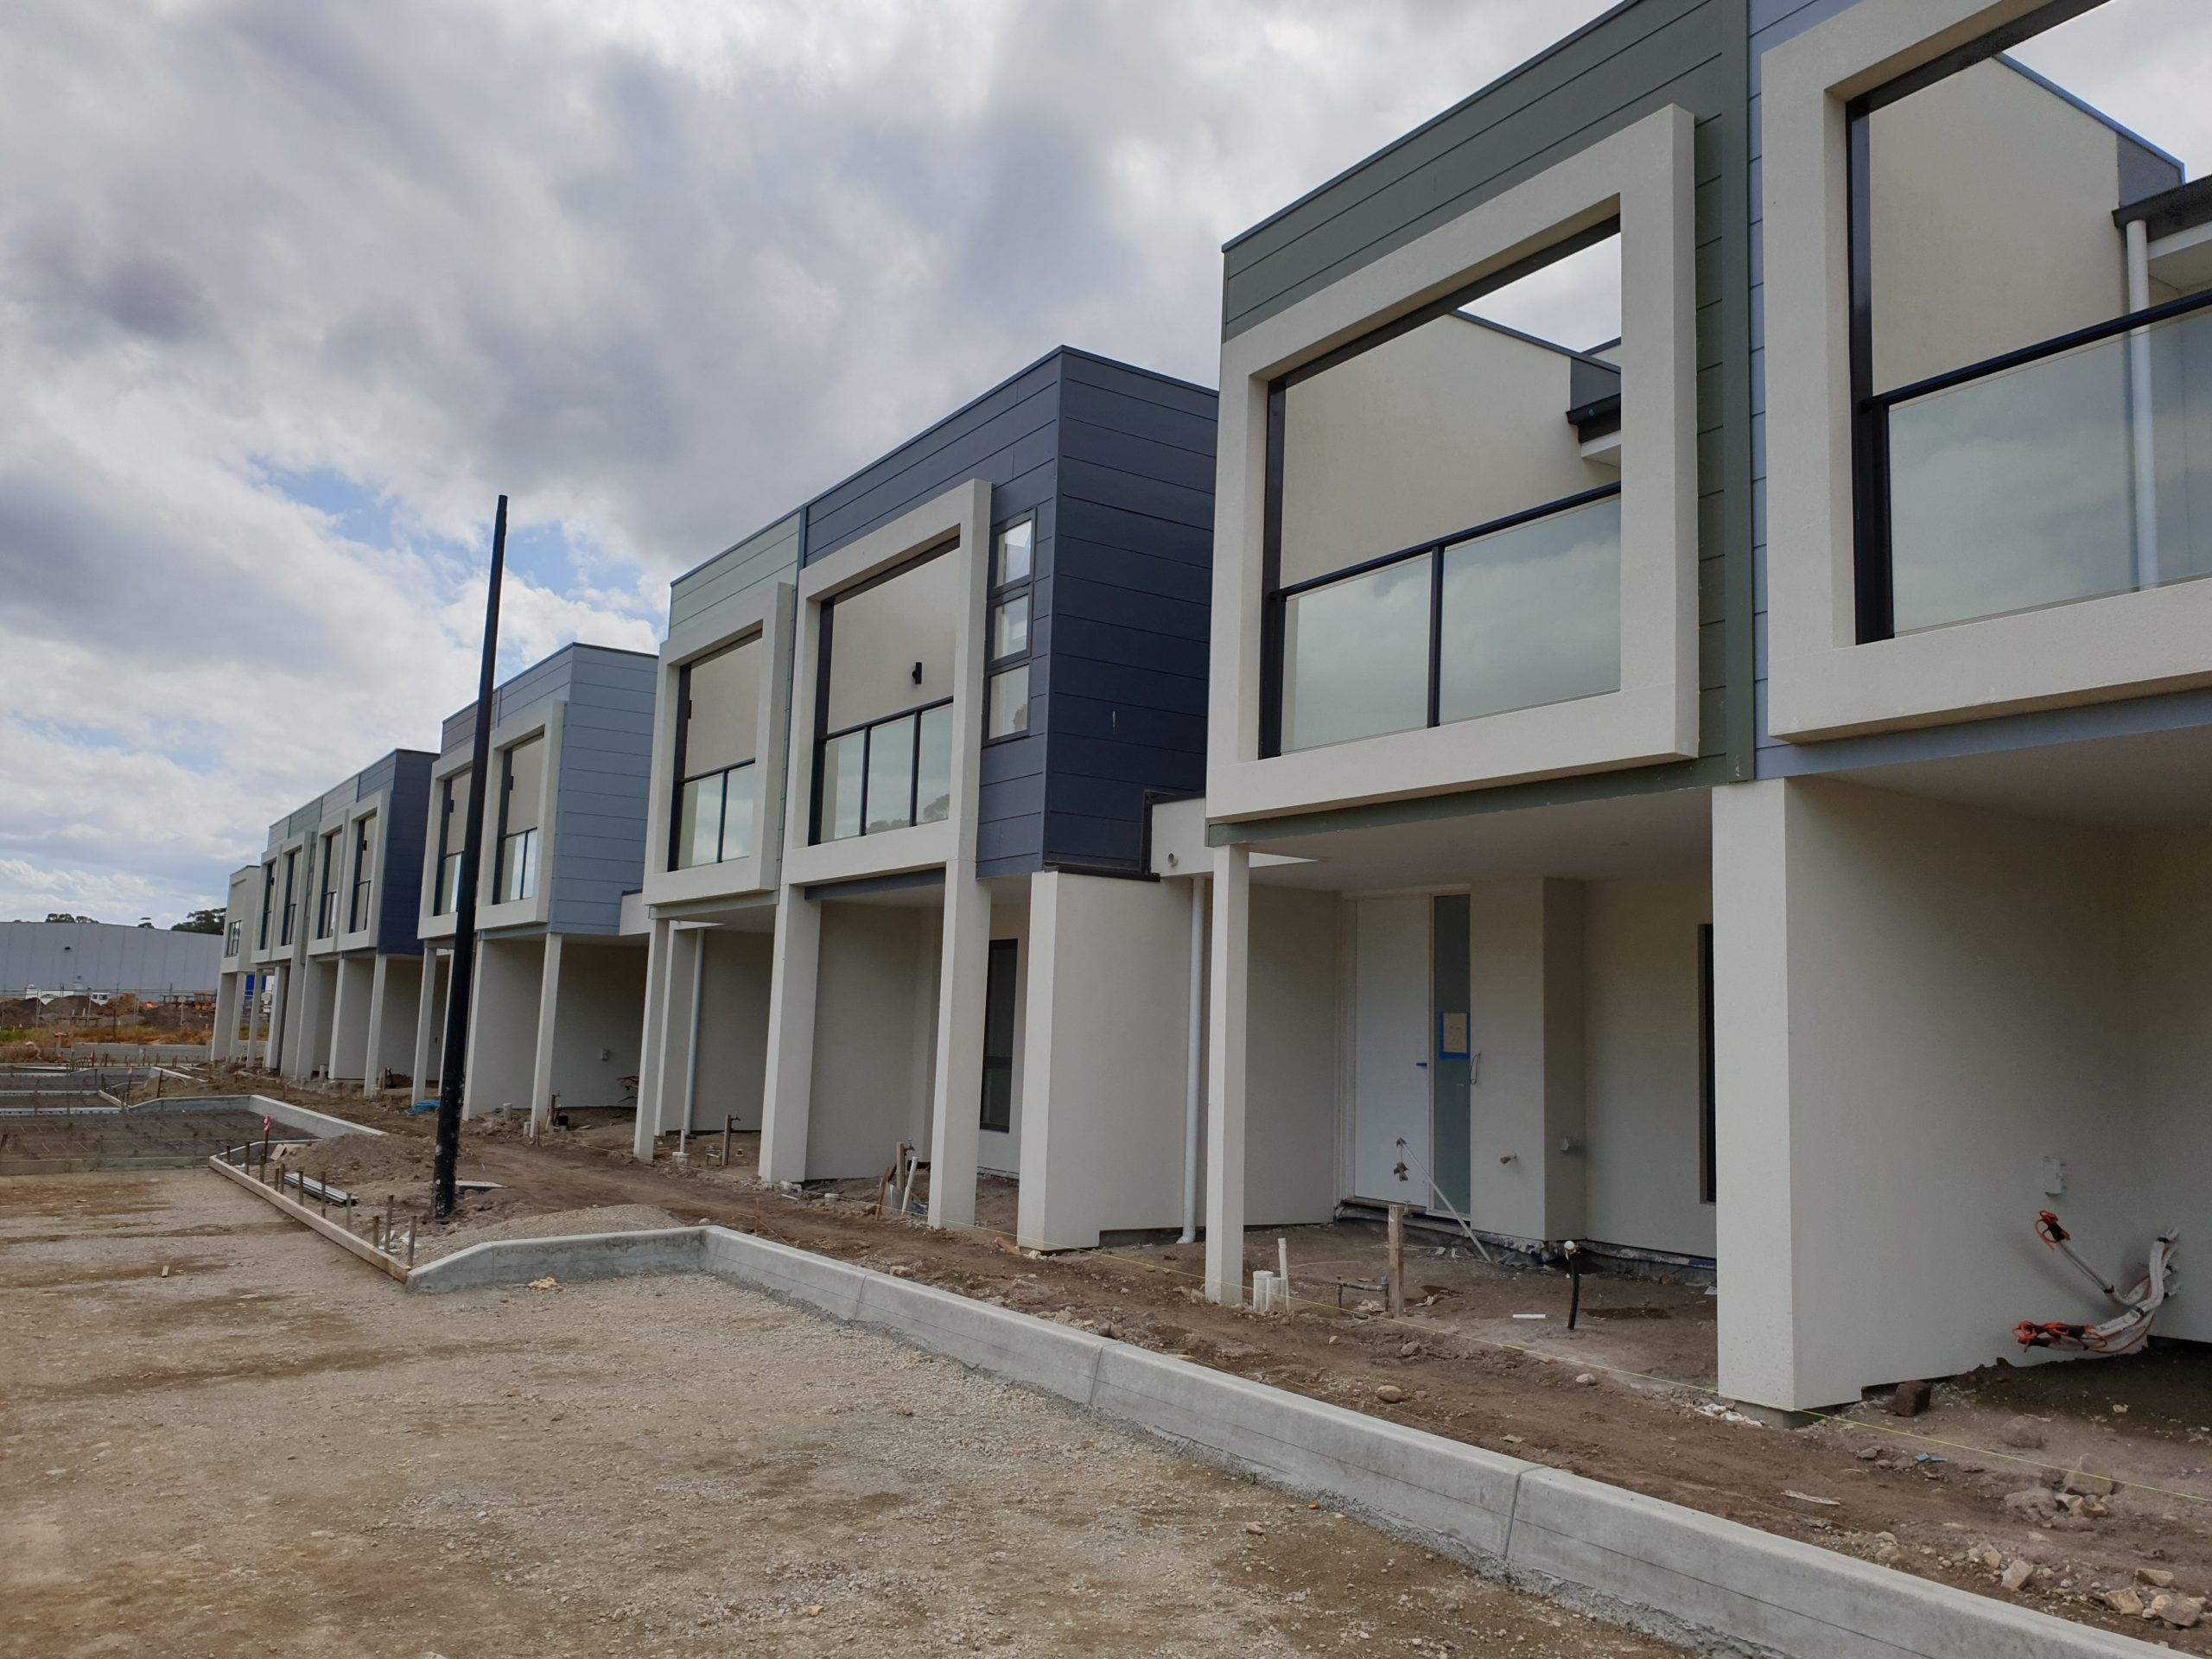 Keysborough - 72 units